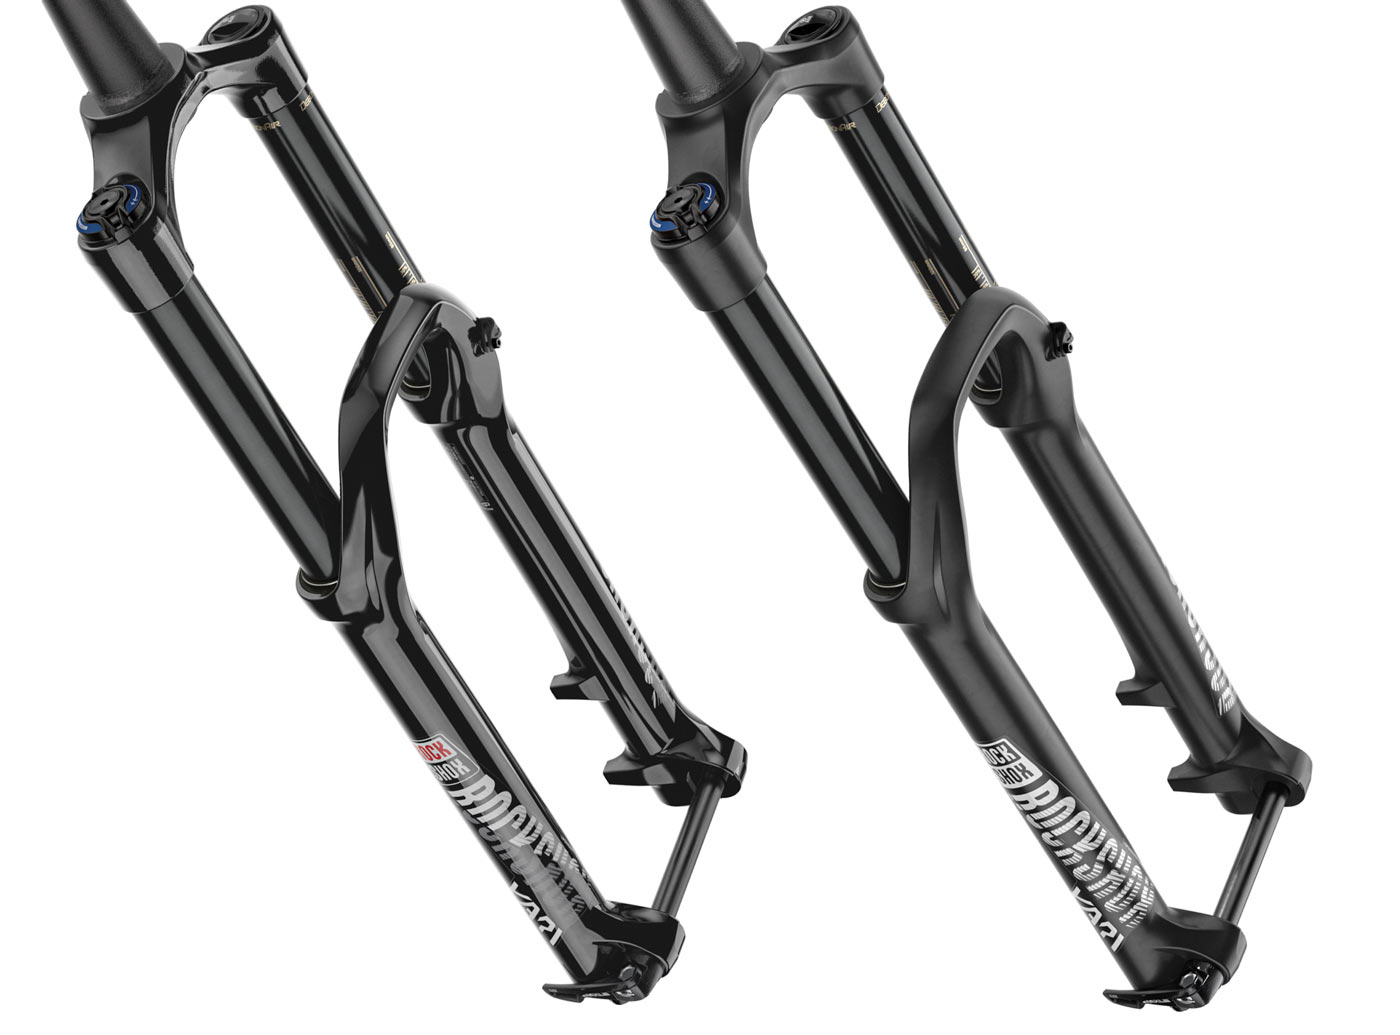 rockshox yari rc debonair manual